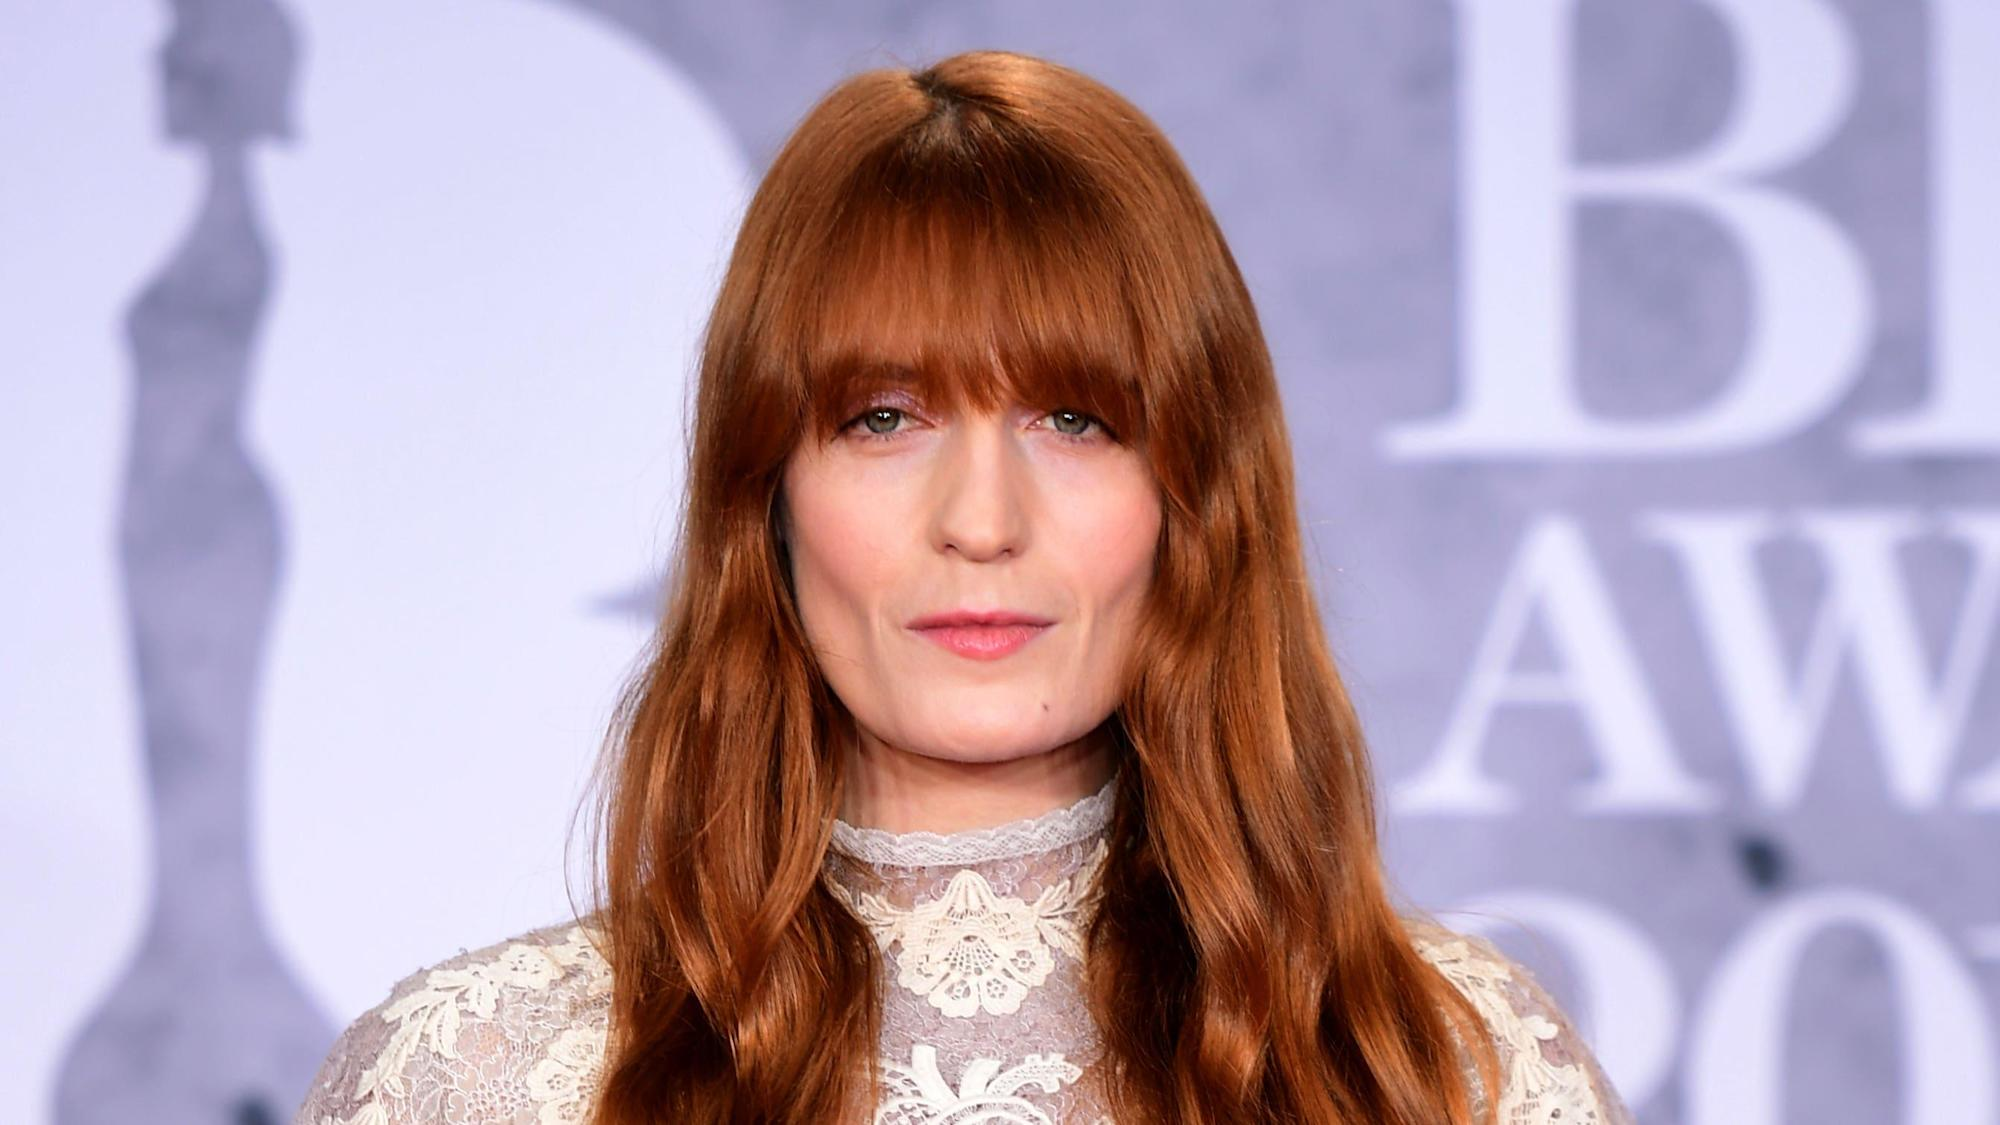 Florence Welch to adapt The Great Gatsby for stage musical